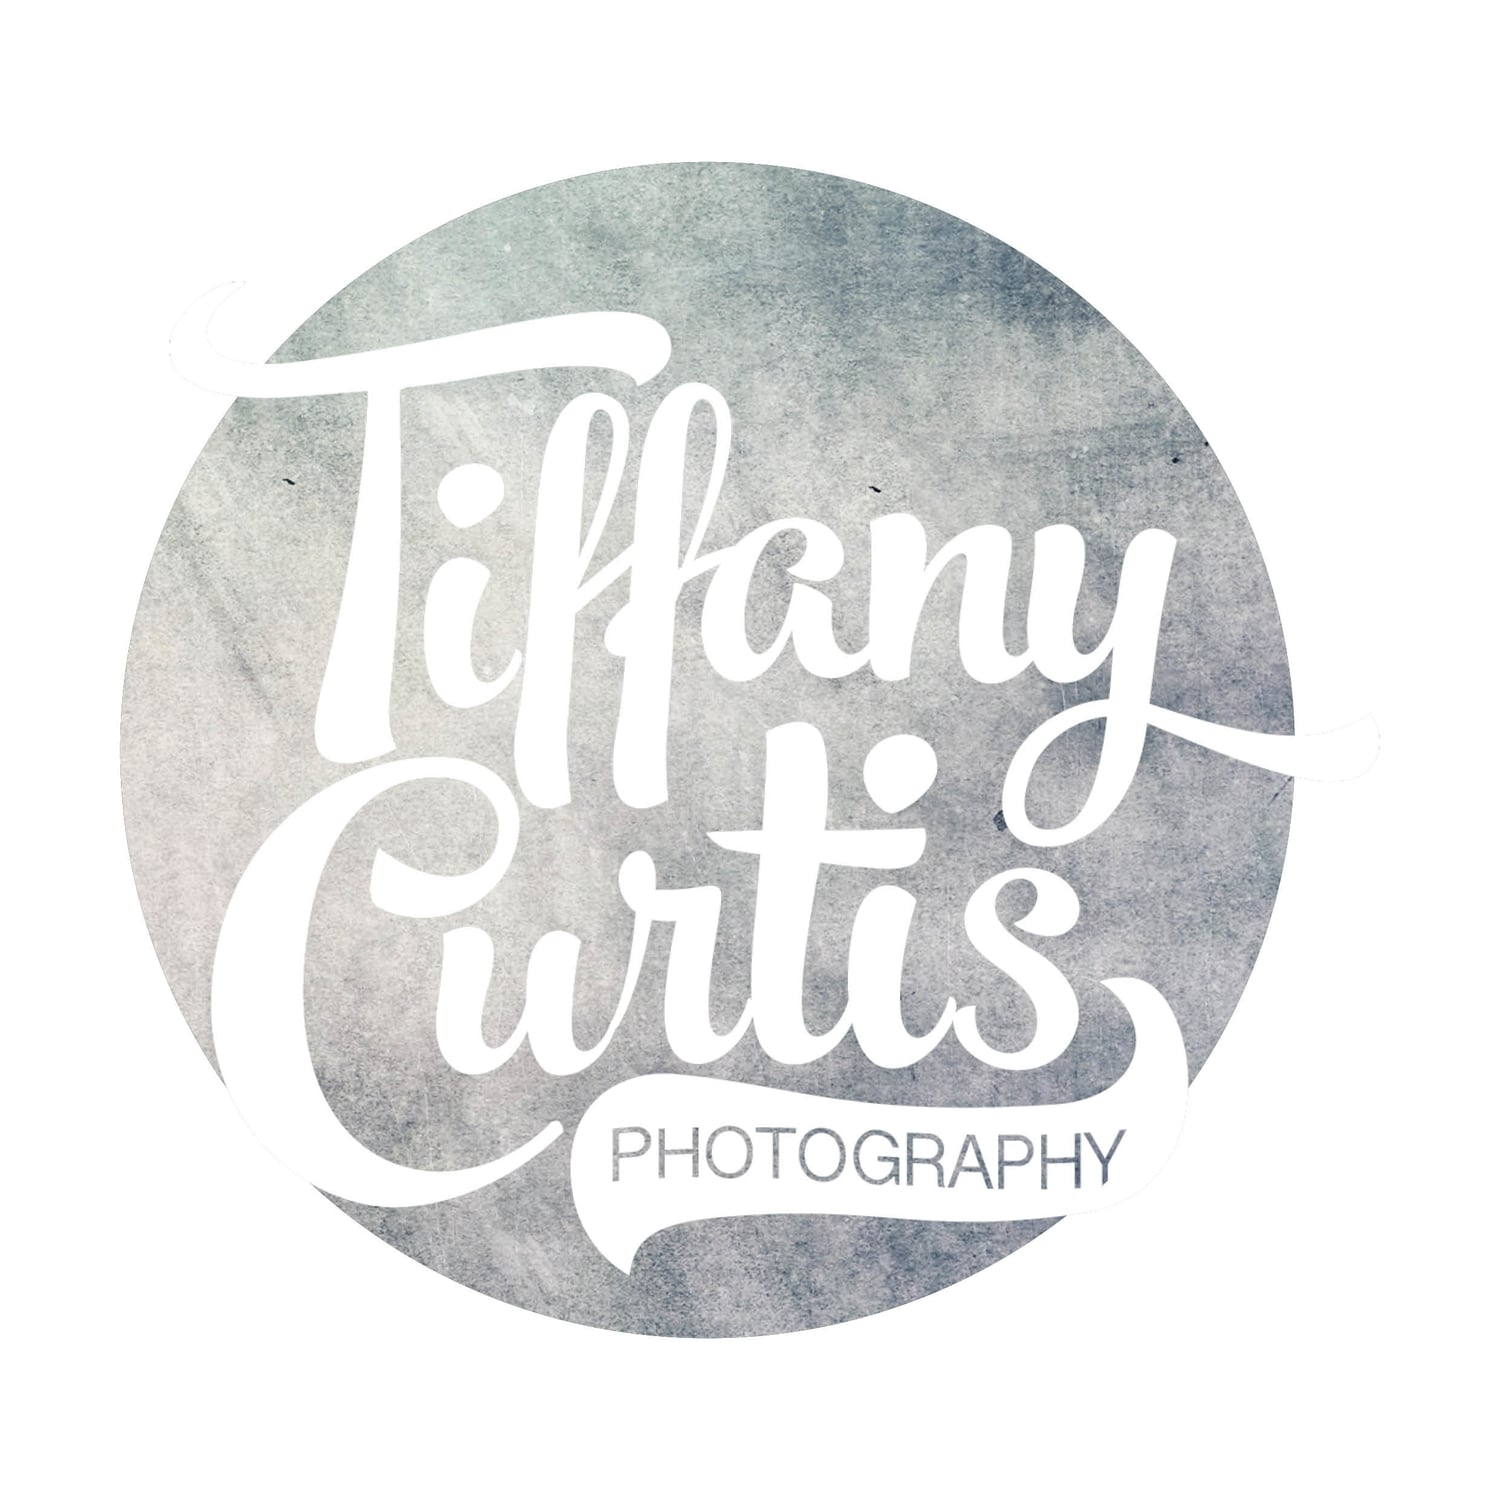 Tiffany Curtis Photography